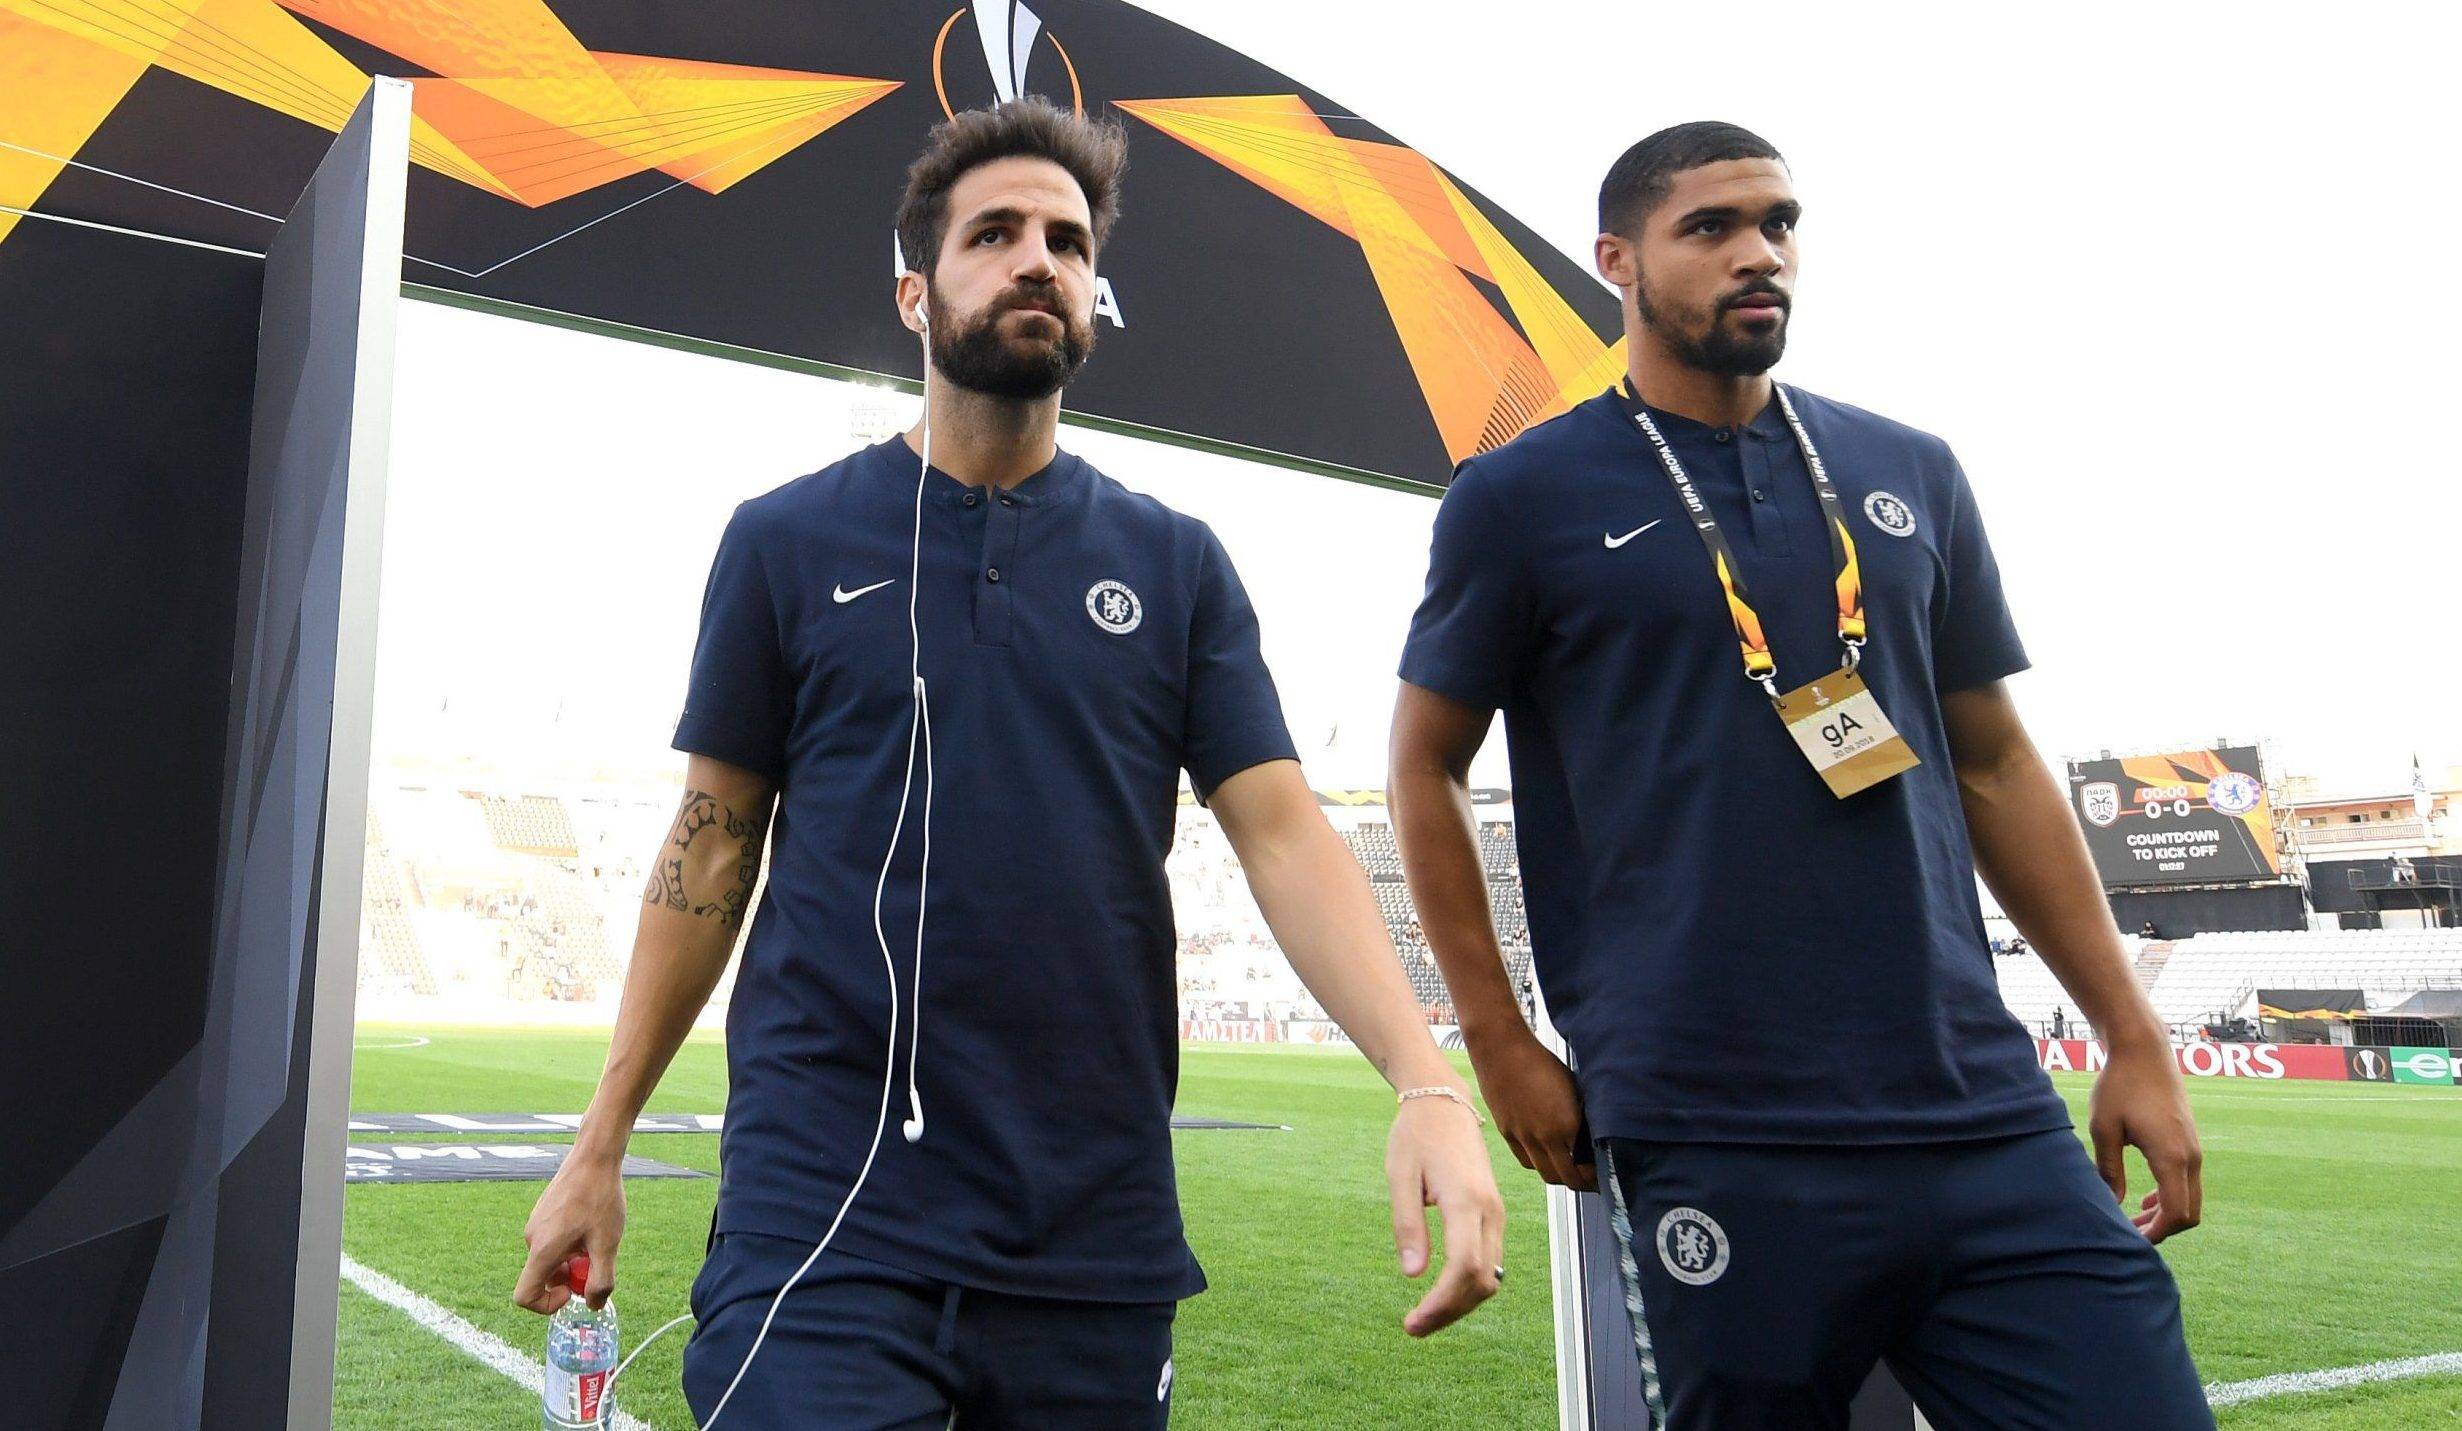 THESSALONIKI, GREECE - SEPTEMBER 20: Cesc Fabregas of Chelsea and Ruben Loftus-Cheek of Chelsea take a look around the pitch prior to the UEFA Europa League Group L match between PAOK and Chelsea at Toumba Stadium on September 20, 2018 in Thessaloniki, Greece. (Photo by Darren Walsh/Chelsea FC via Getty Images)